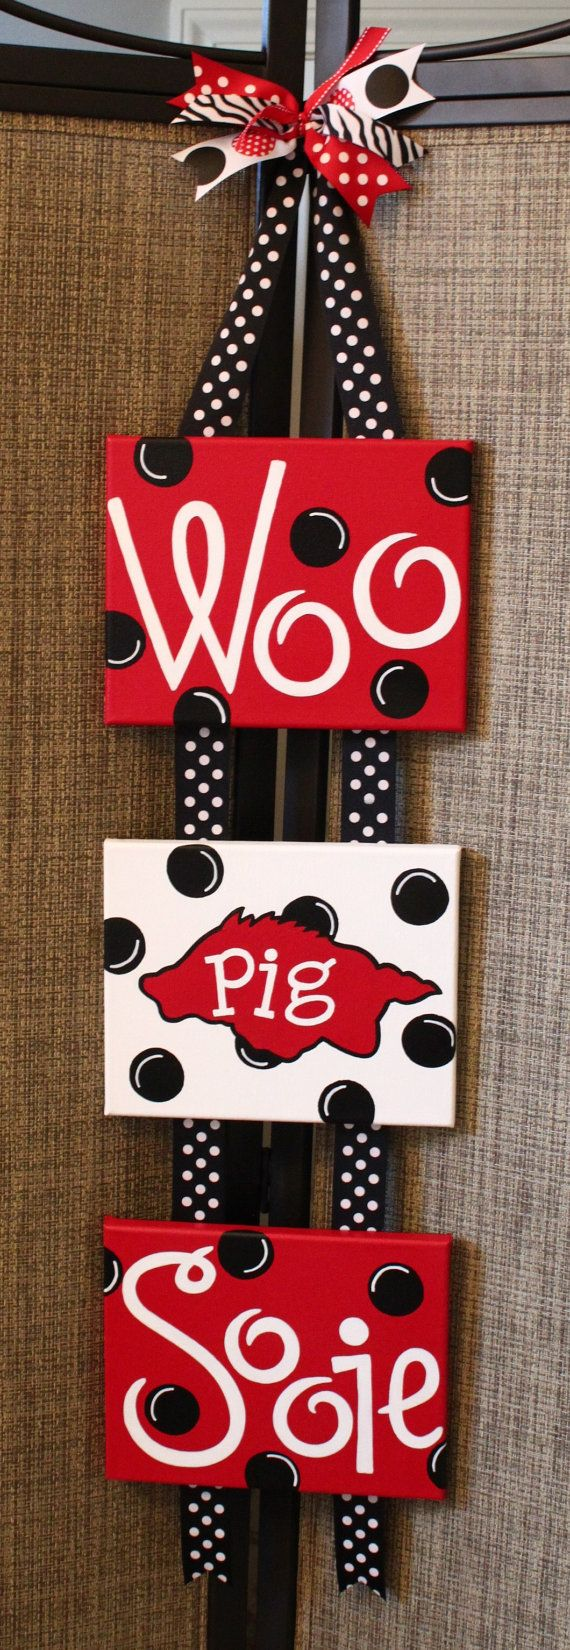 Items similar to Arkansas Razorback Wall Hanging on Etsy-- maybe I need one of these instead of a wreathe for the front door!